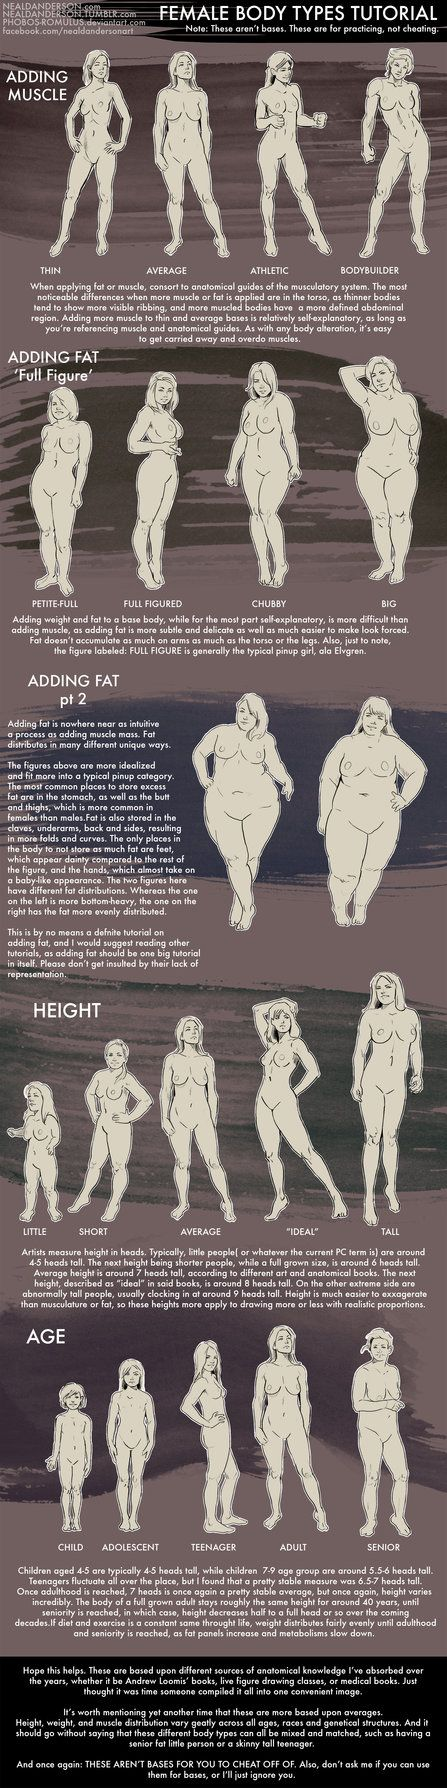 Female Body Types Tutorial by Phobos-Romulus on DeviantArt